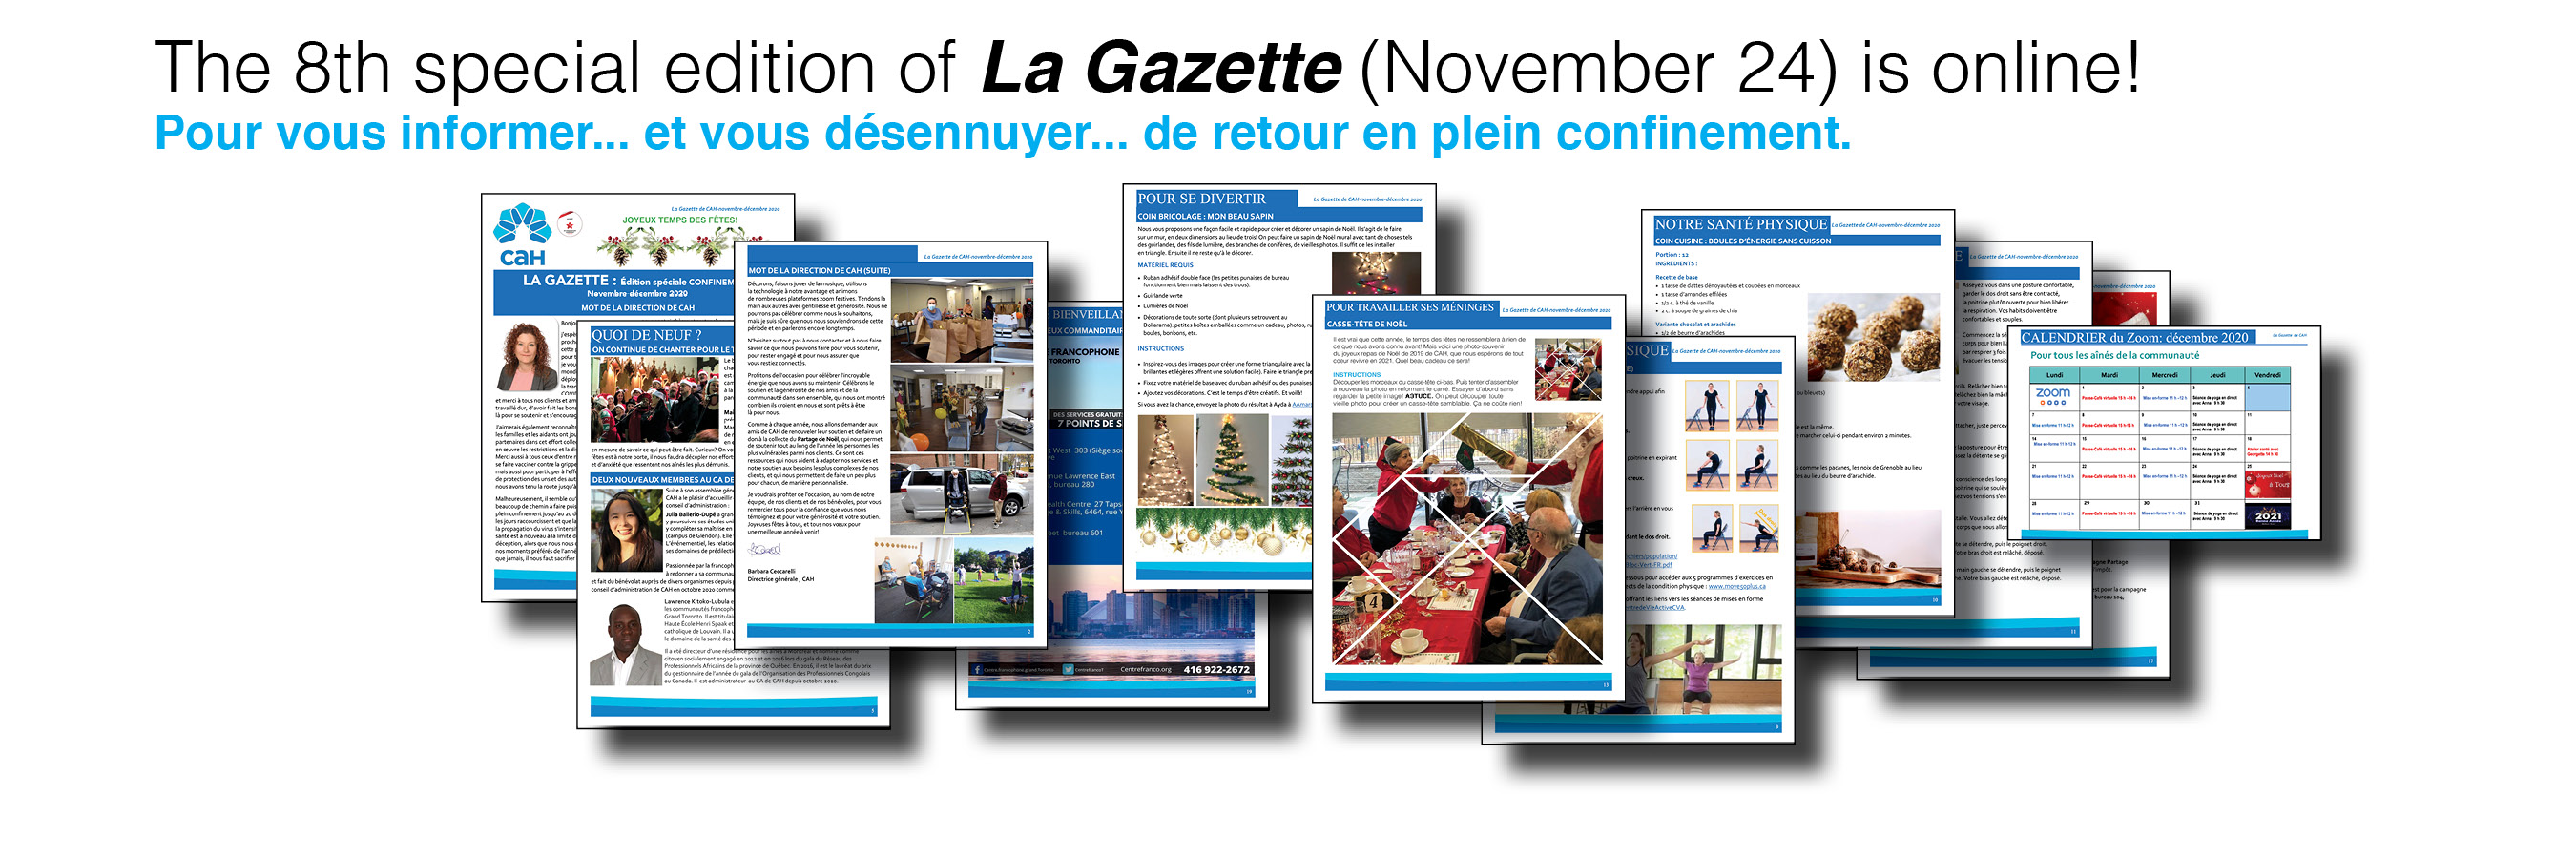 The 8th special edition of La Gazette (in French) is online!